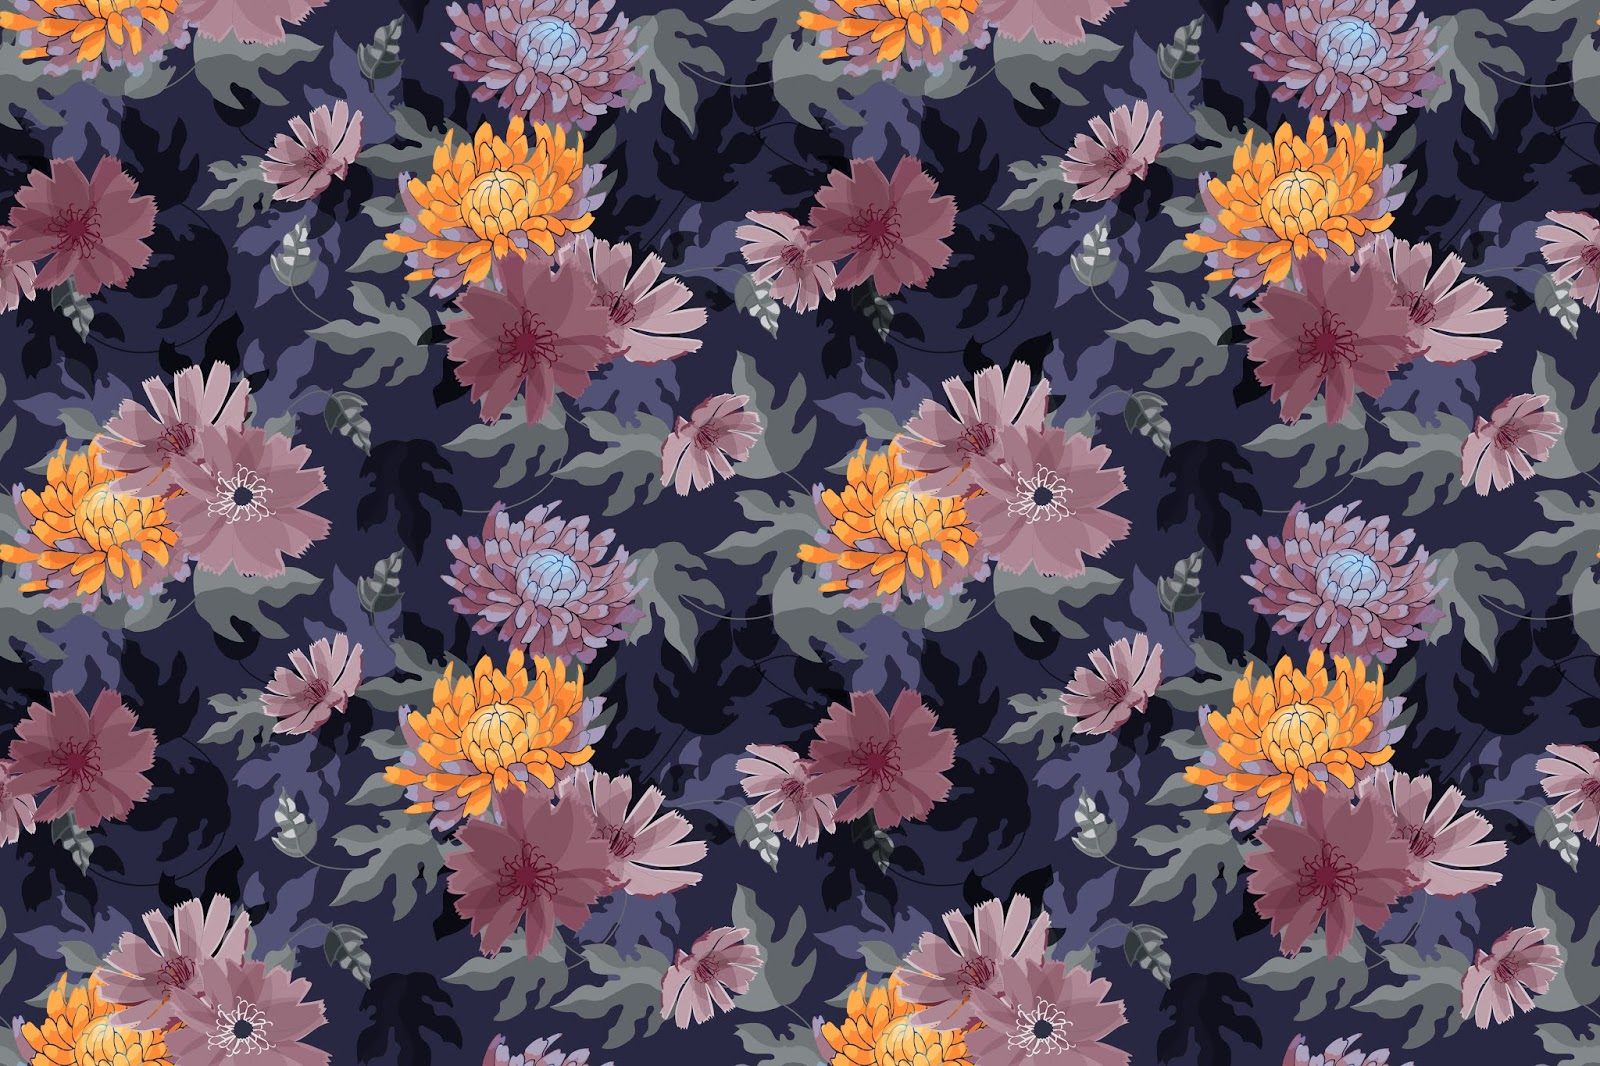 Art Floral Vector Seamless Pattern Free Download Vector CDR, AI, EPS and PNG Formats